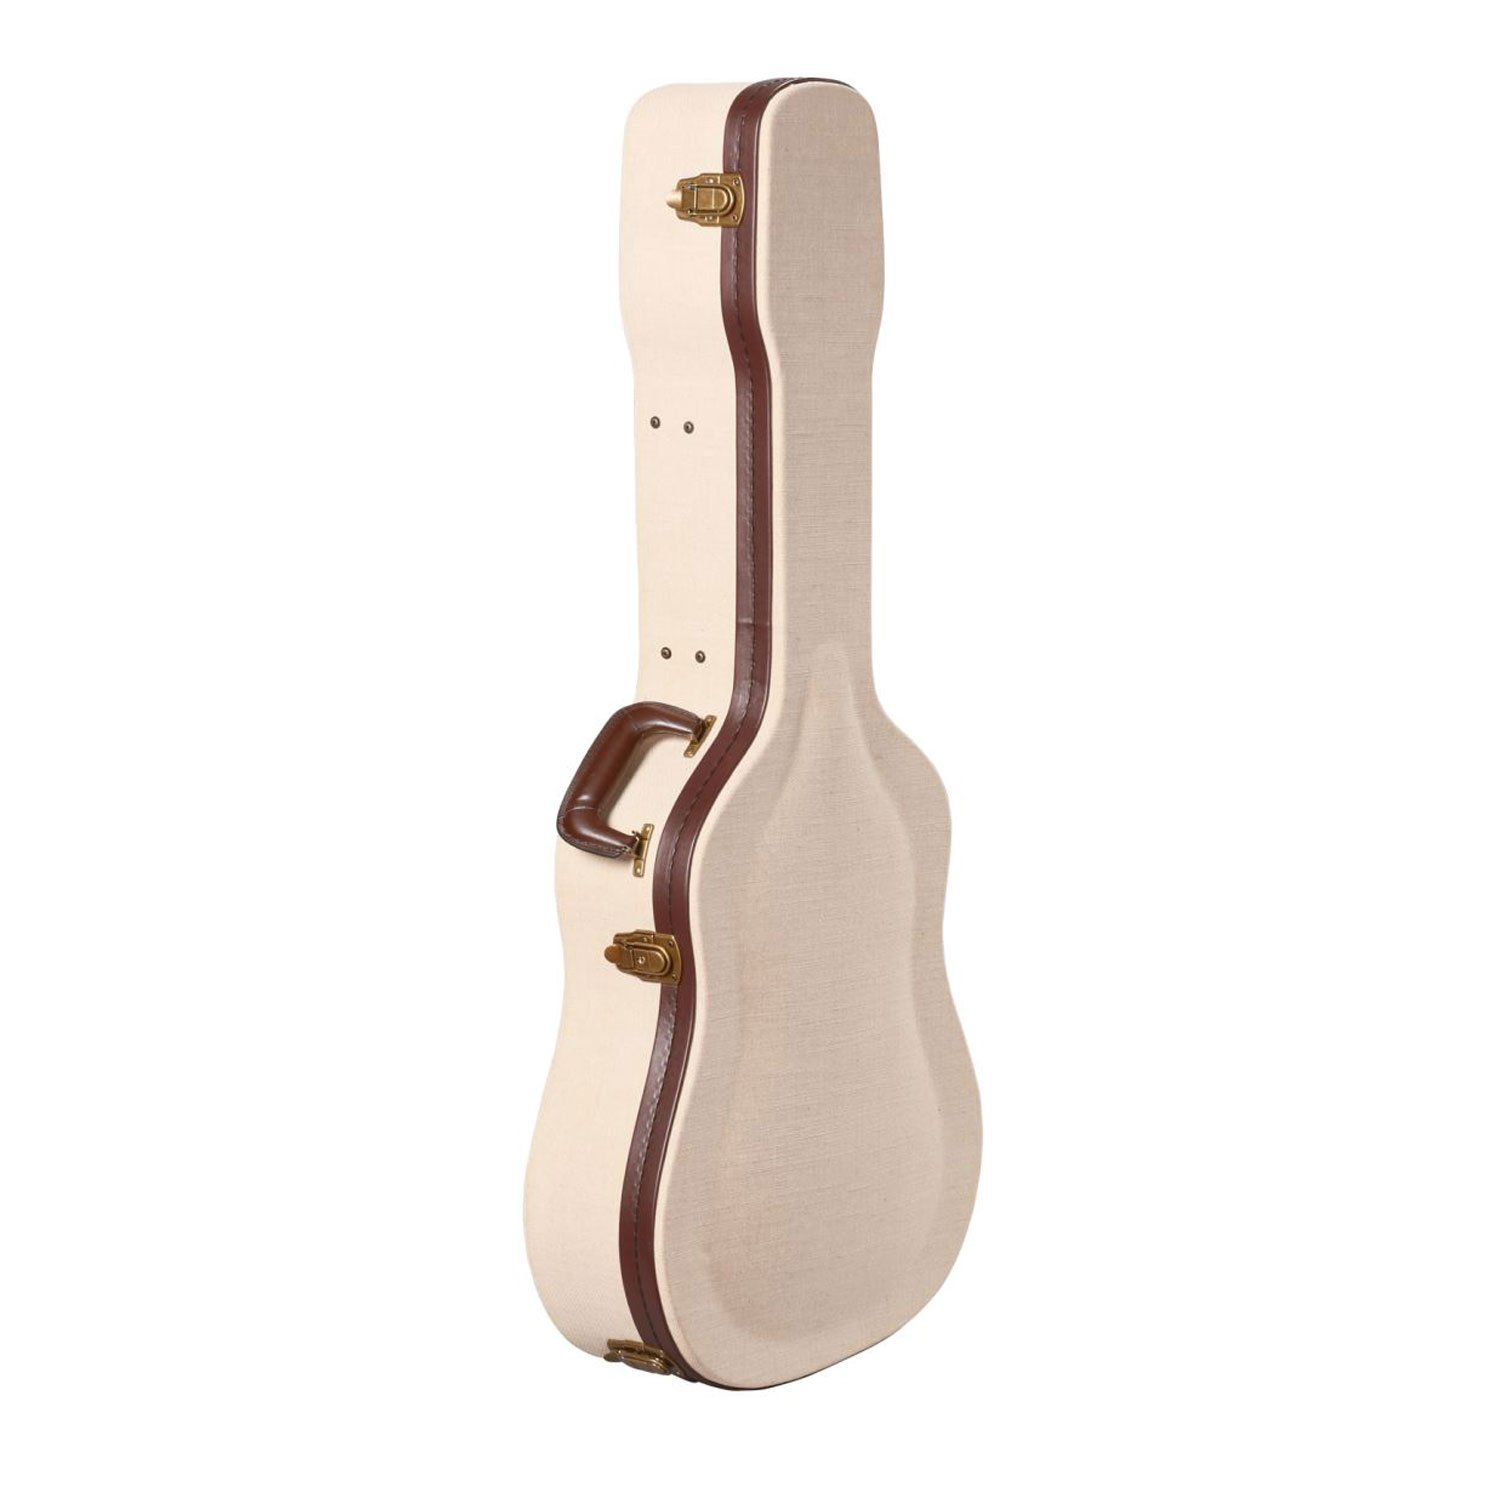 Gator Cases Journeyman Series Deluxe Wood Case for Acoustic Guitars (GW-JM-DREAD) by Gator